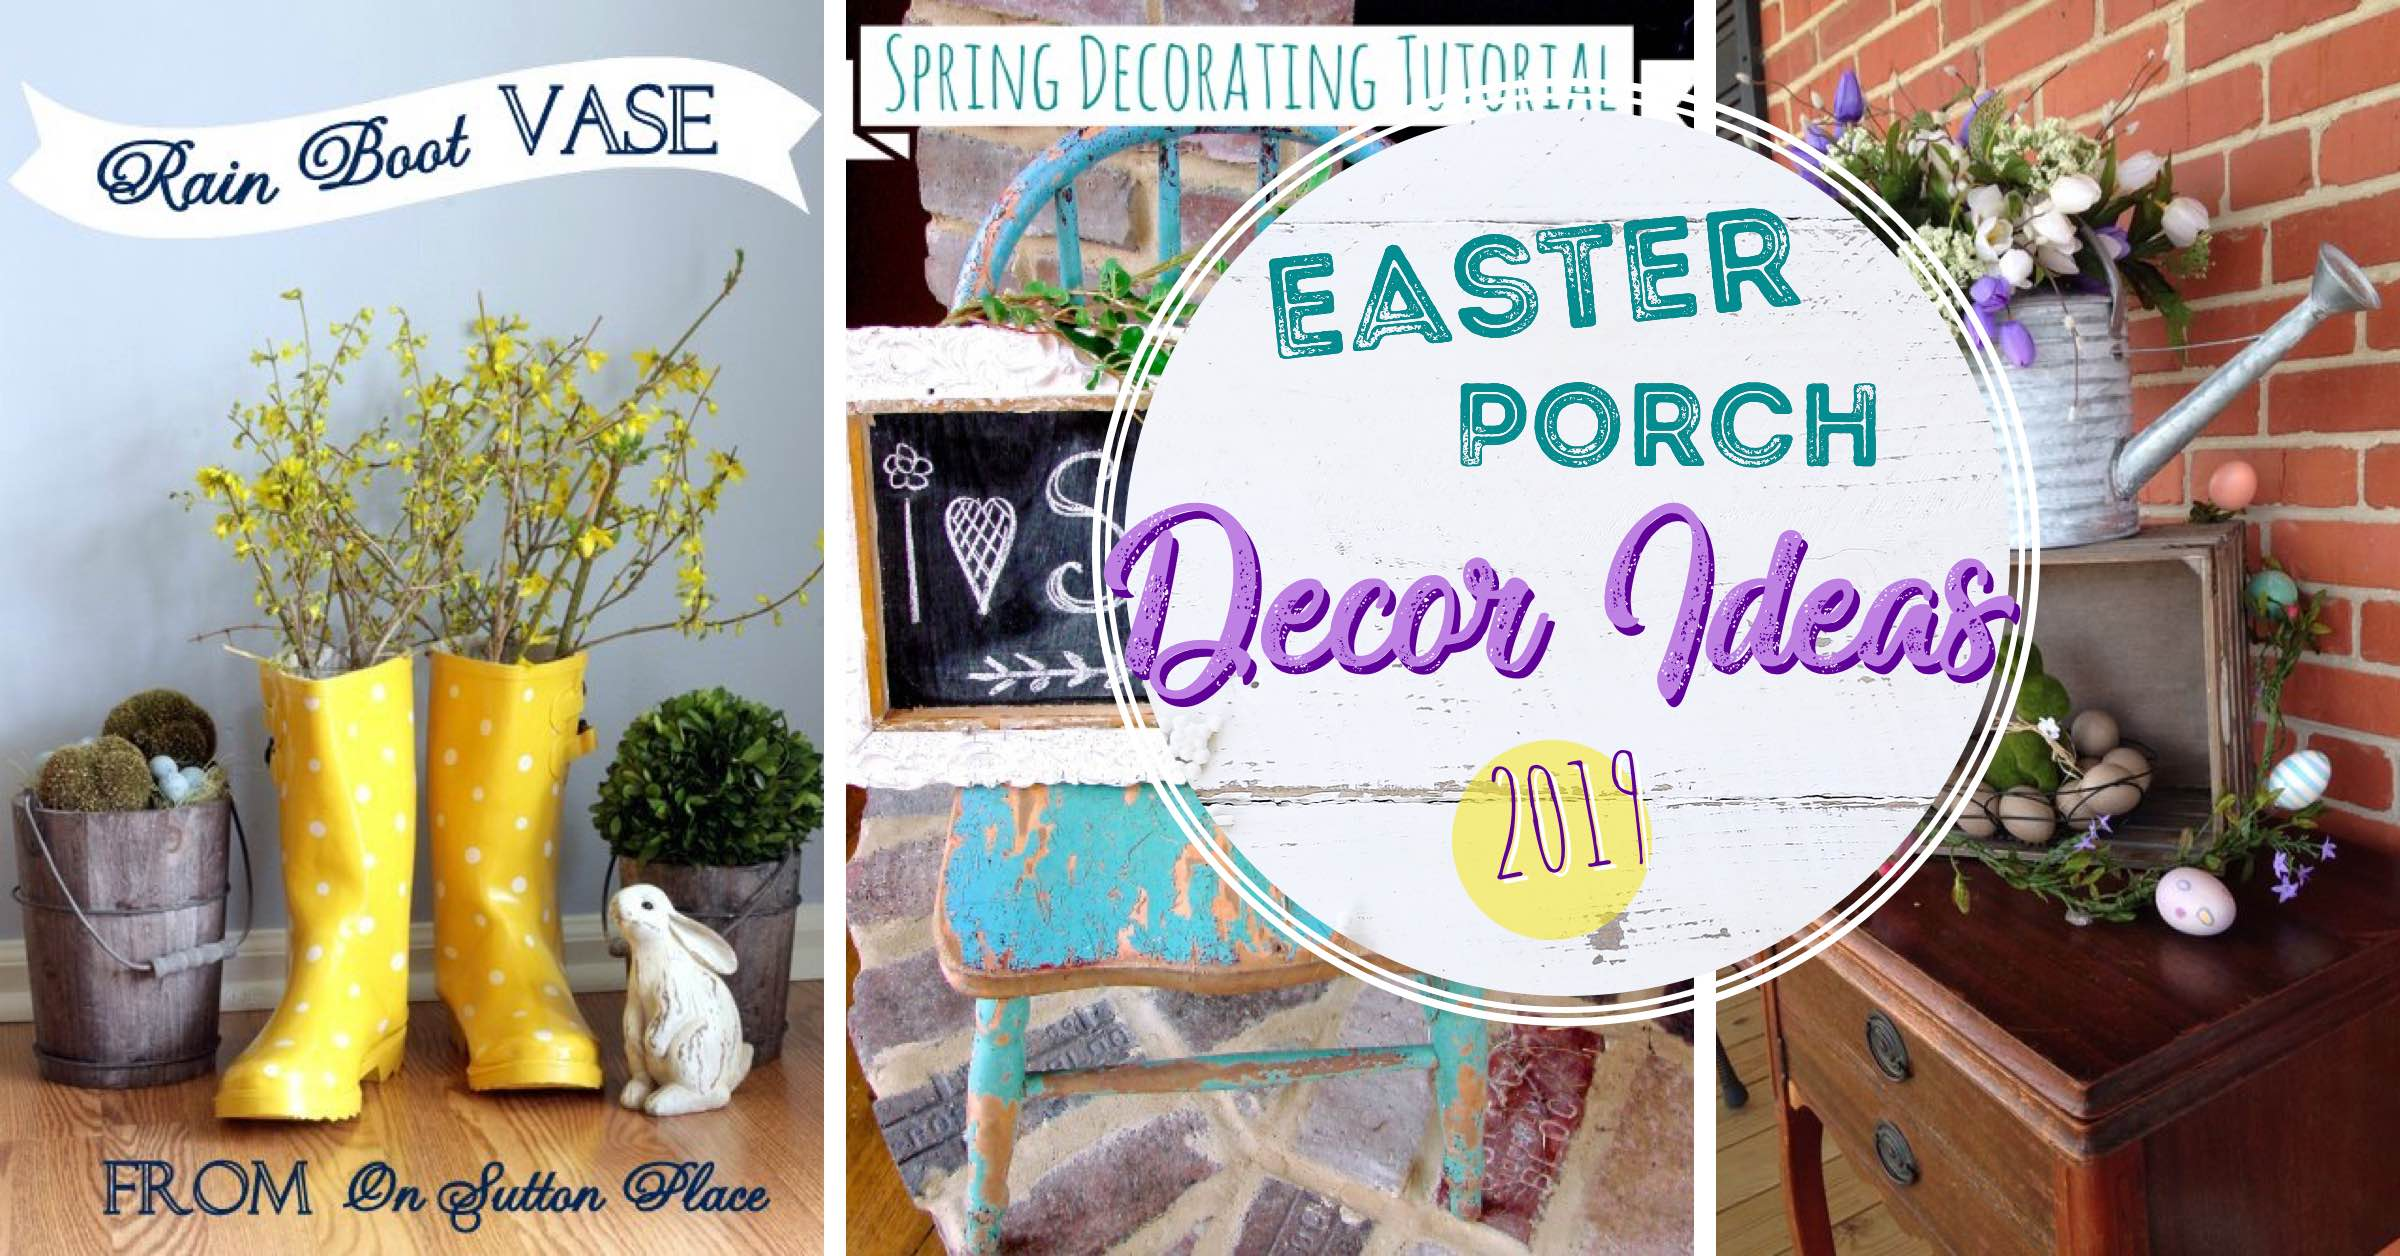 14 Easter Porch Decor Ideas Dressing Up The Space With Some Happiness